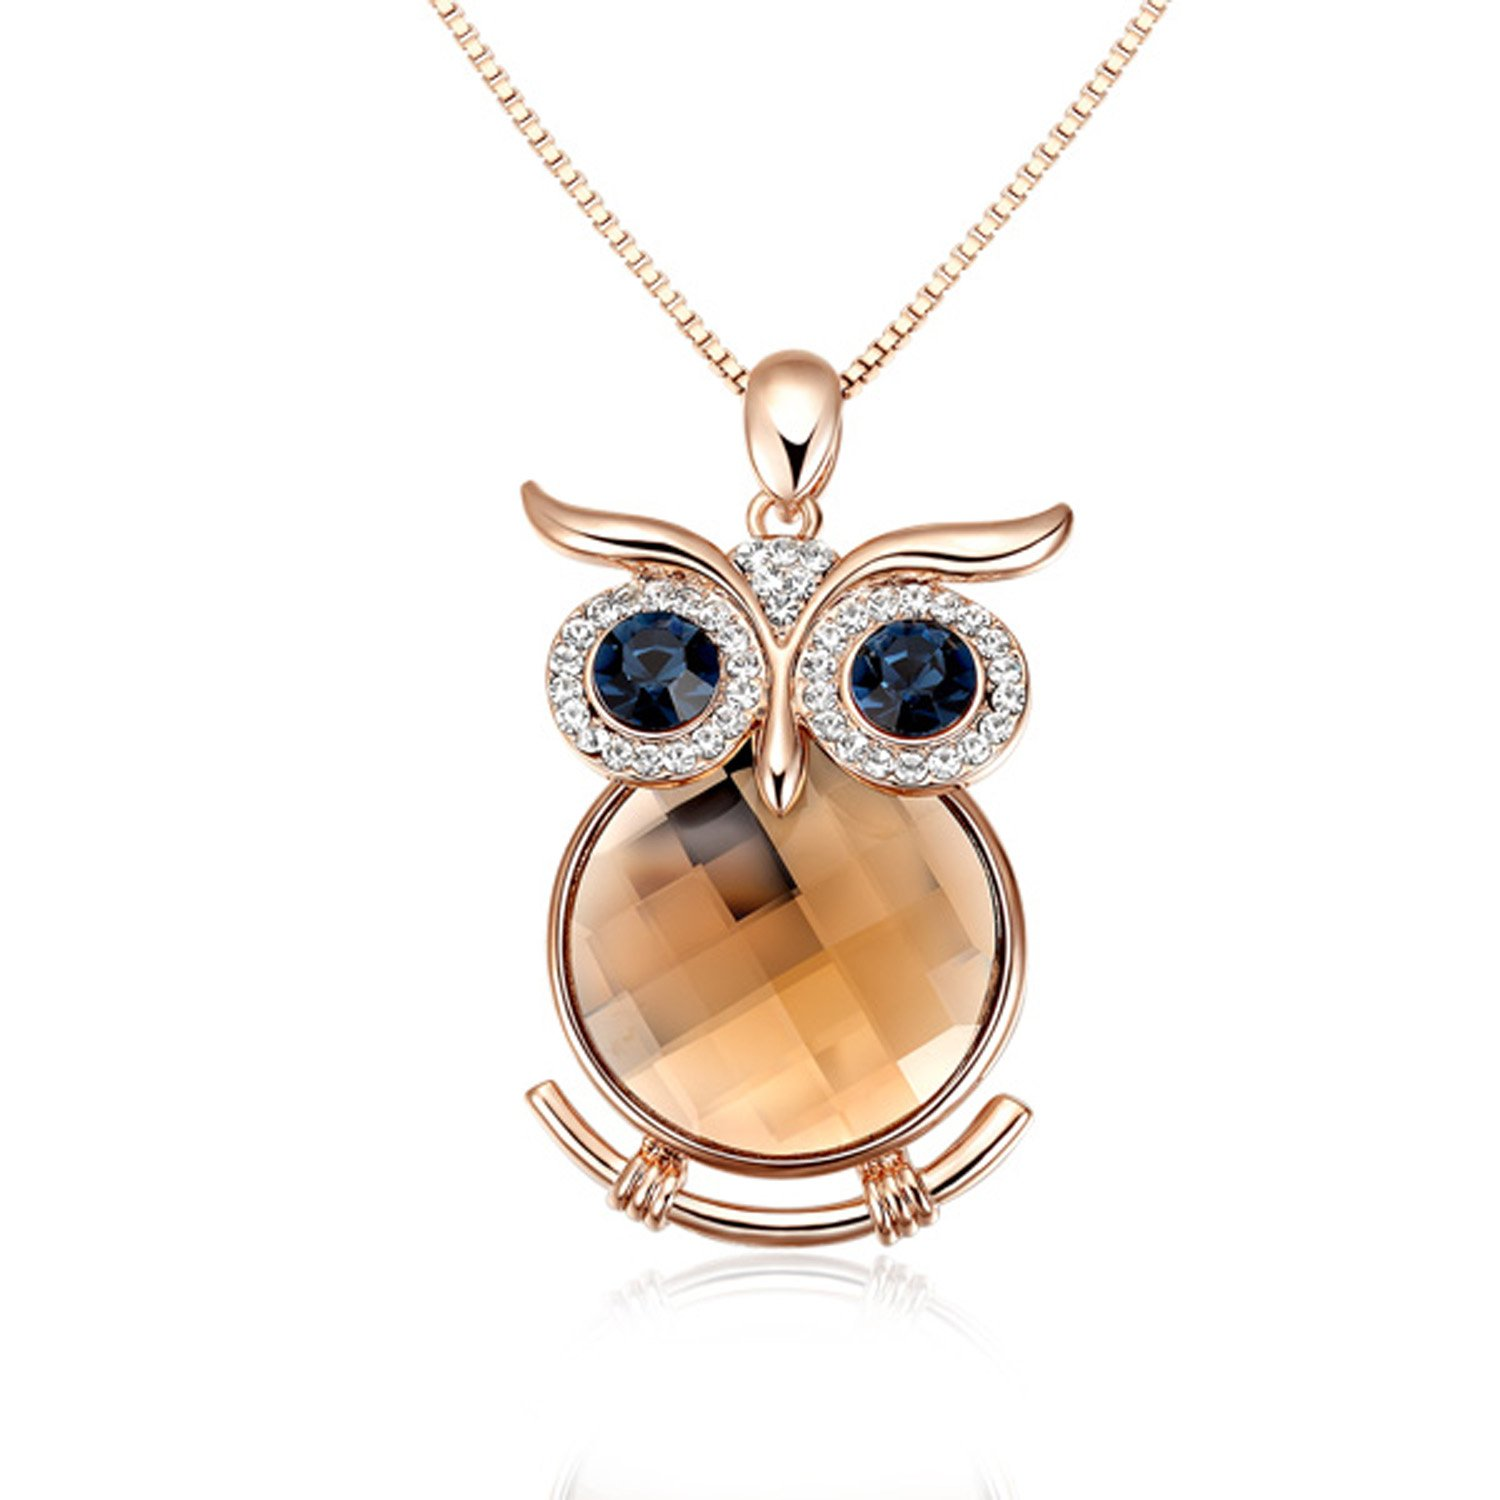 Yoursfs Owl Necklace For Women Rose GP Crystal Rhinestone Long Pendant Sweater Chain